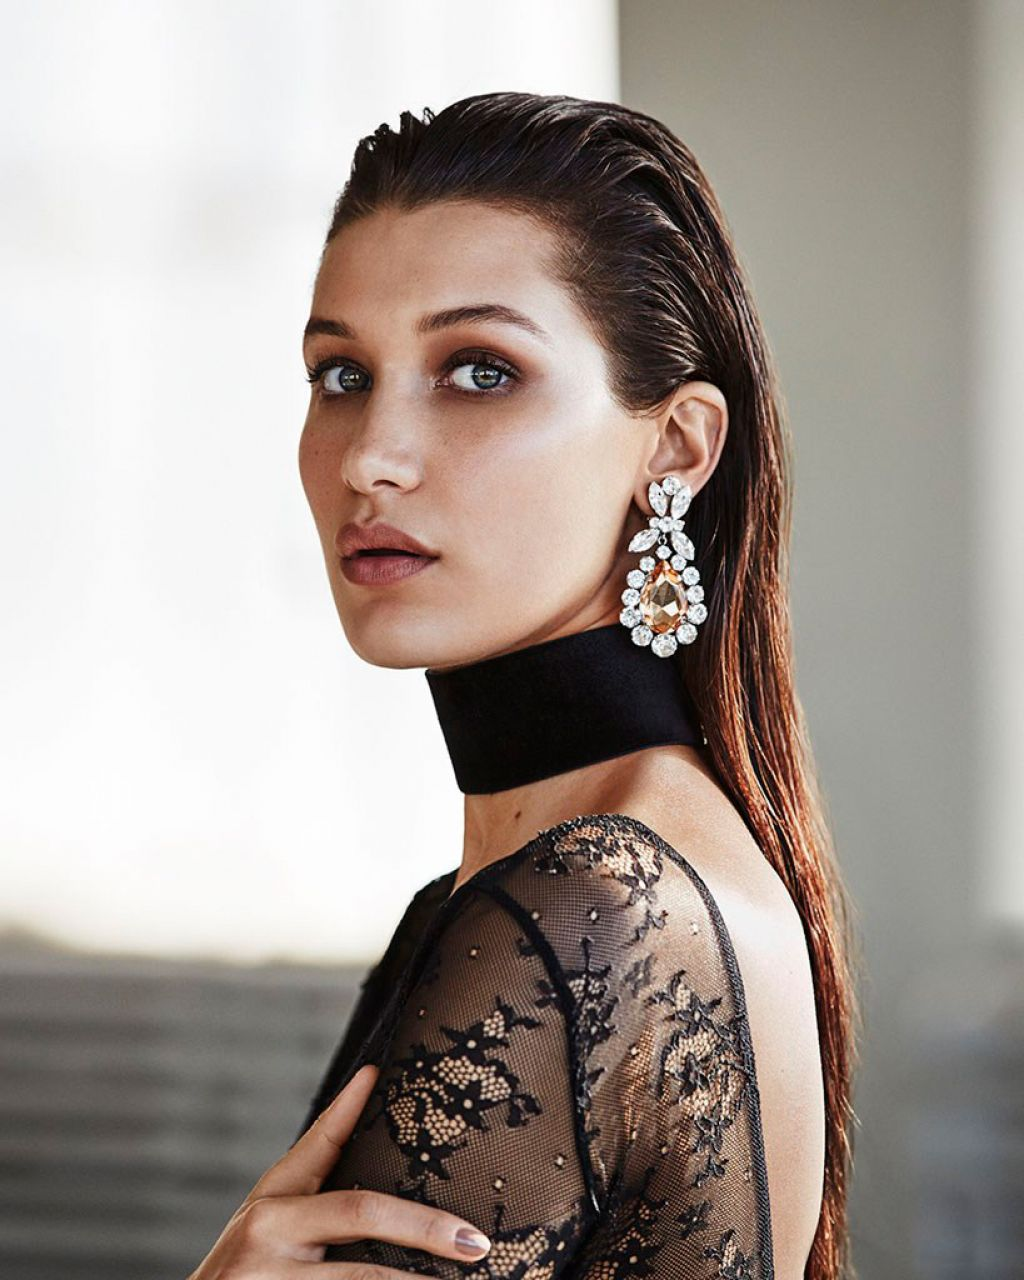 cliphair-extensions-bella-hadid-photoshoot